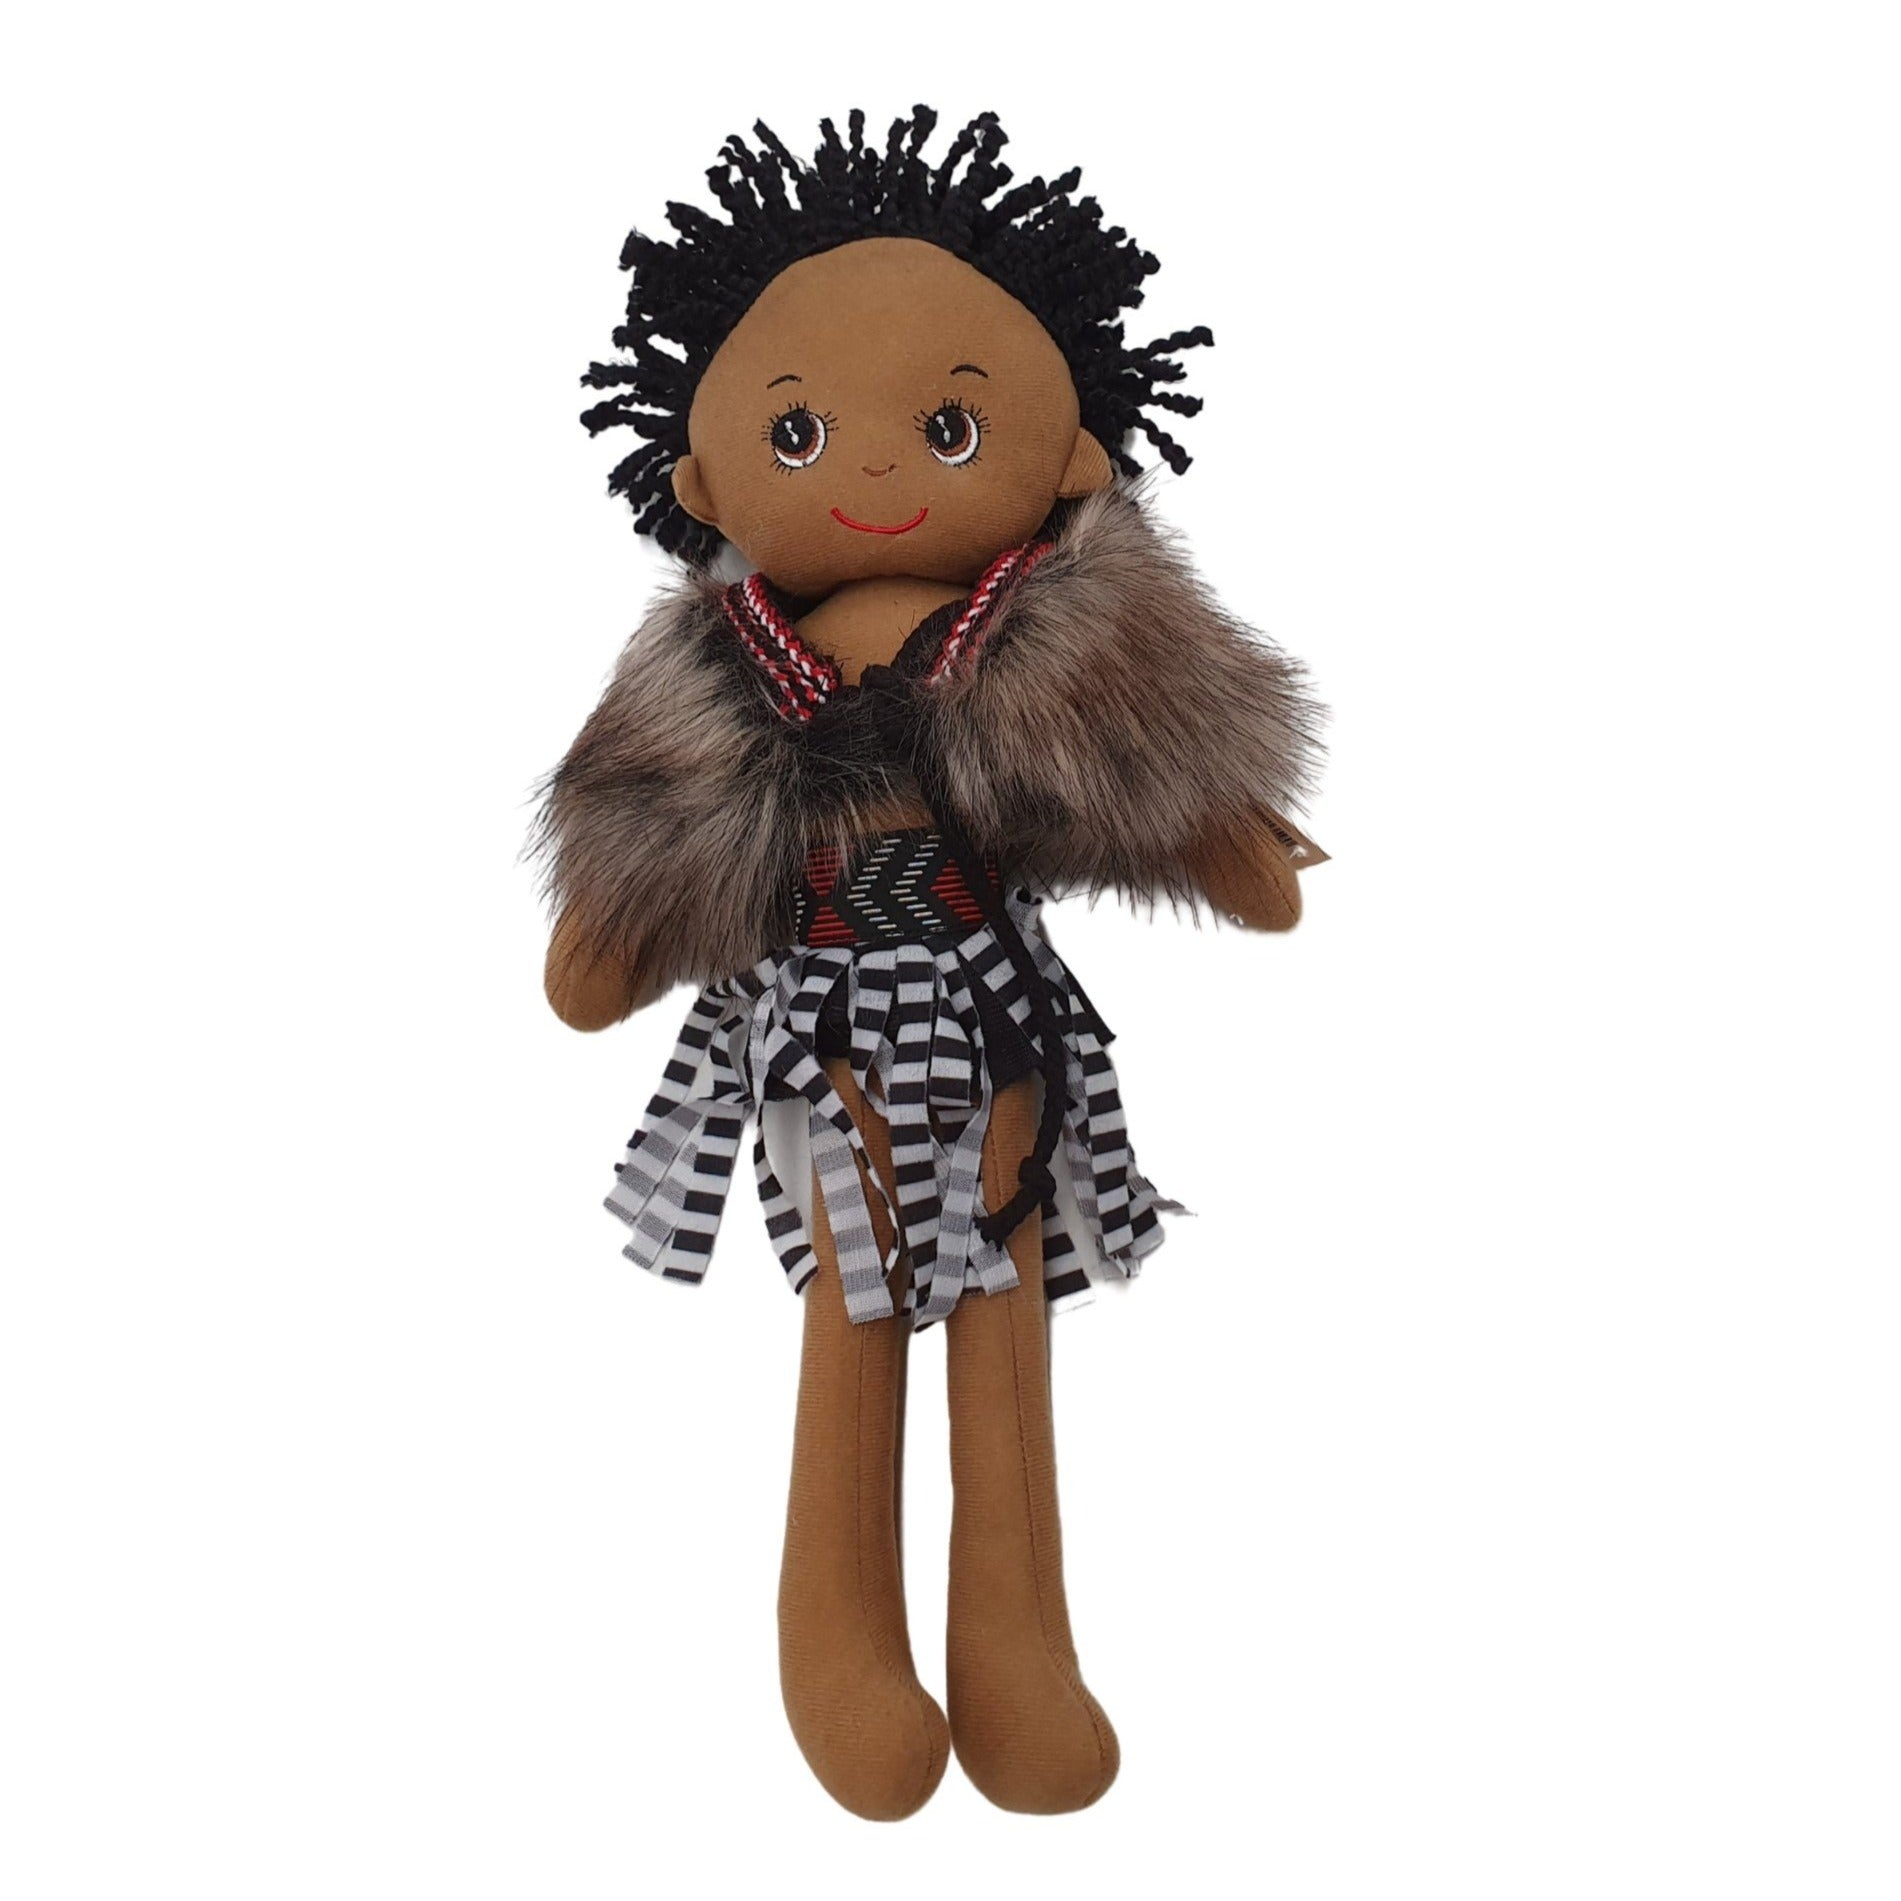 Korowai maori cloak worn by boy doll in New Zealand